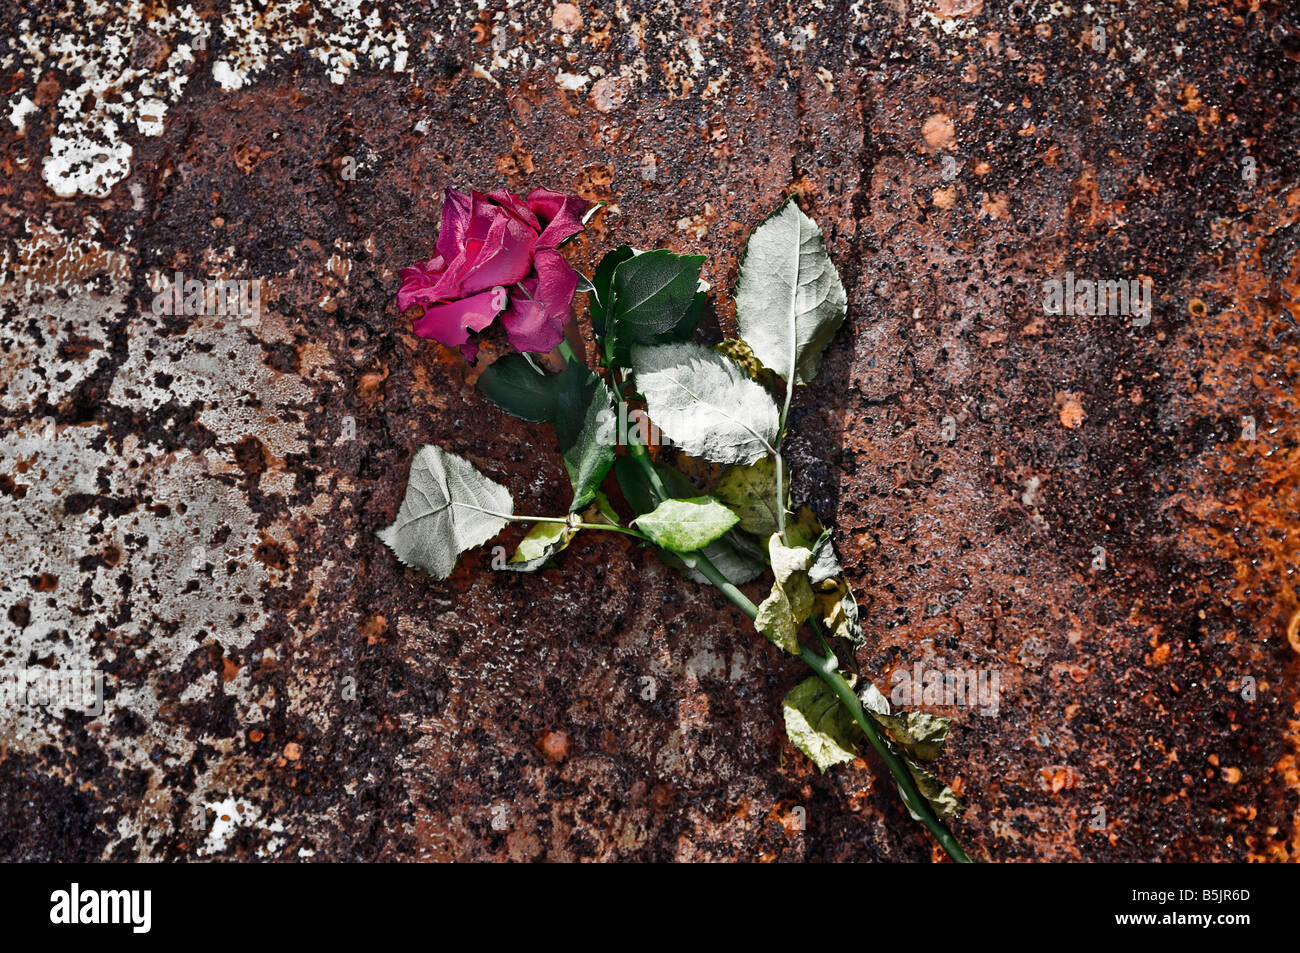 Withered rose - Stock Image